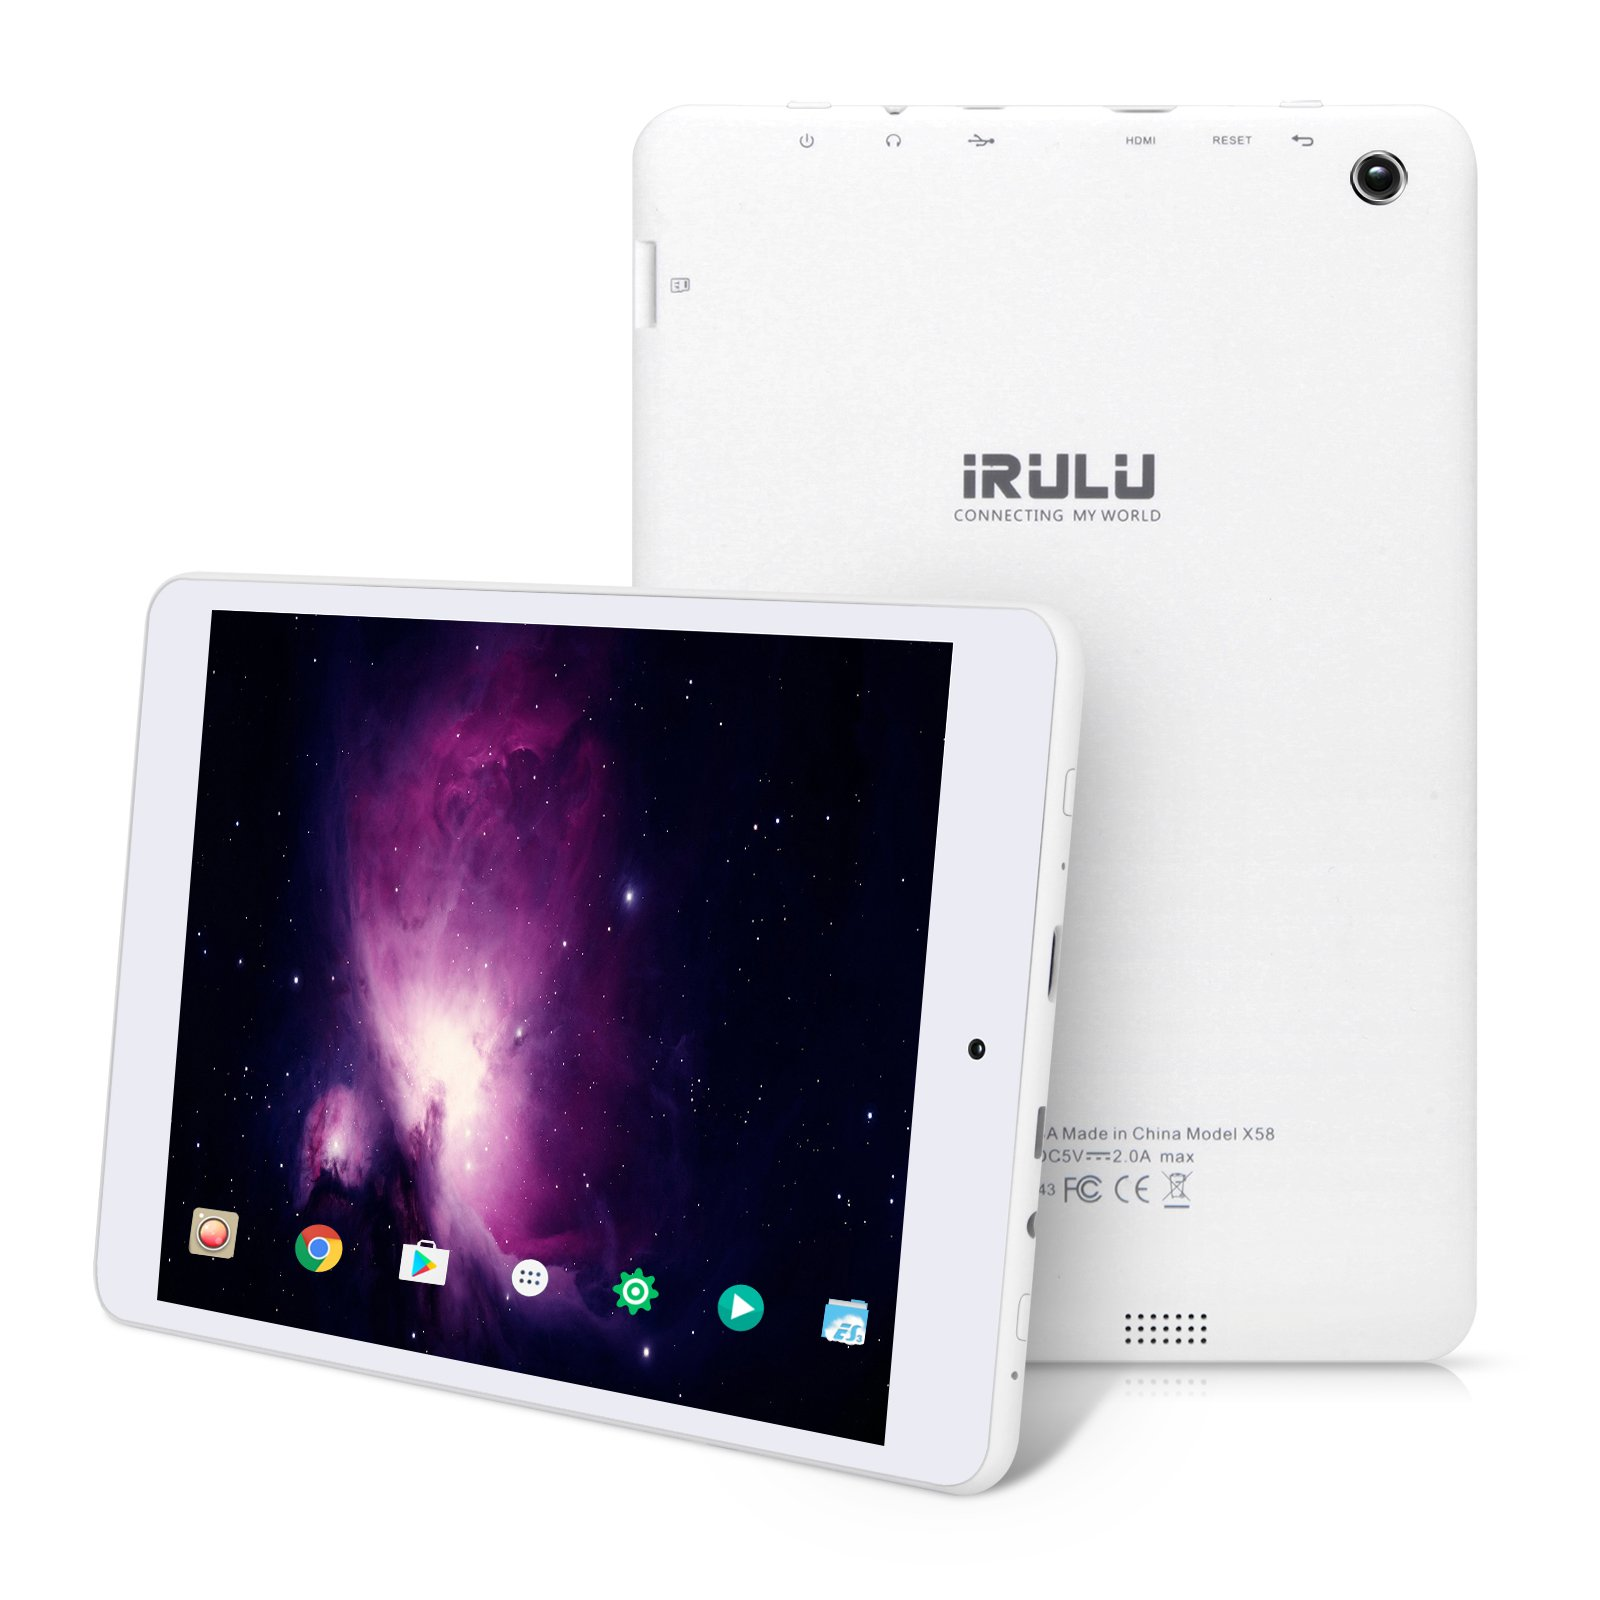 """7.85"""" Tablet Android Google 7.0, 1GB/16GB, 1.3gHz Quad Core,768x1024 IPS HD Display,Dual Camera, Microsoft Mini HDMI Bluetooth G-Sensor Supported,GMS Certified,iRULU eXpro 5 S Tablet (X5 S)-White by iRULU (Image #9)"""